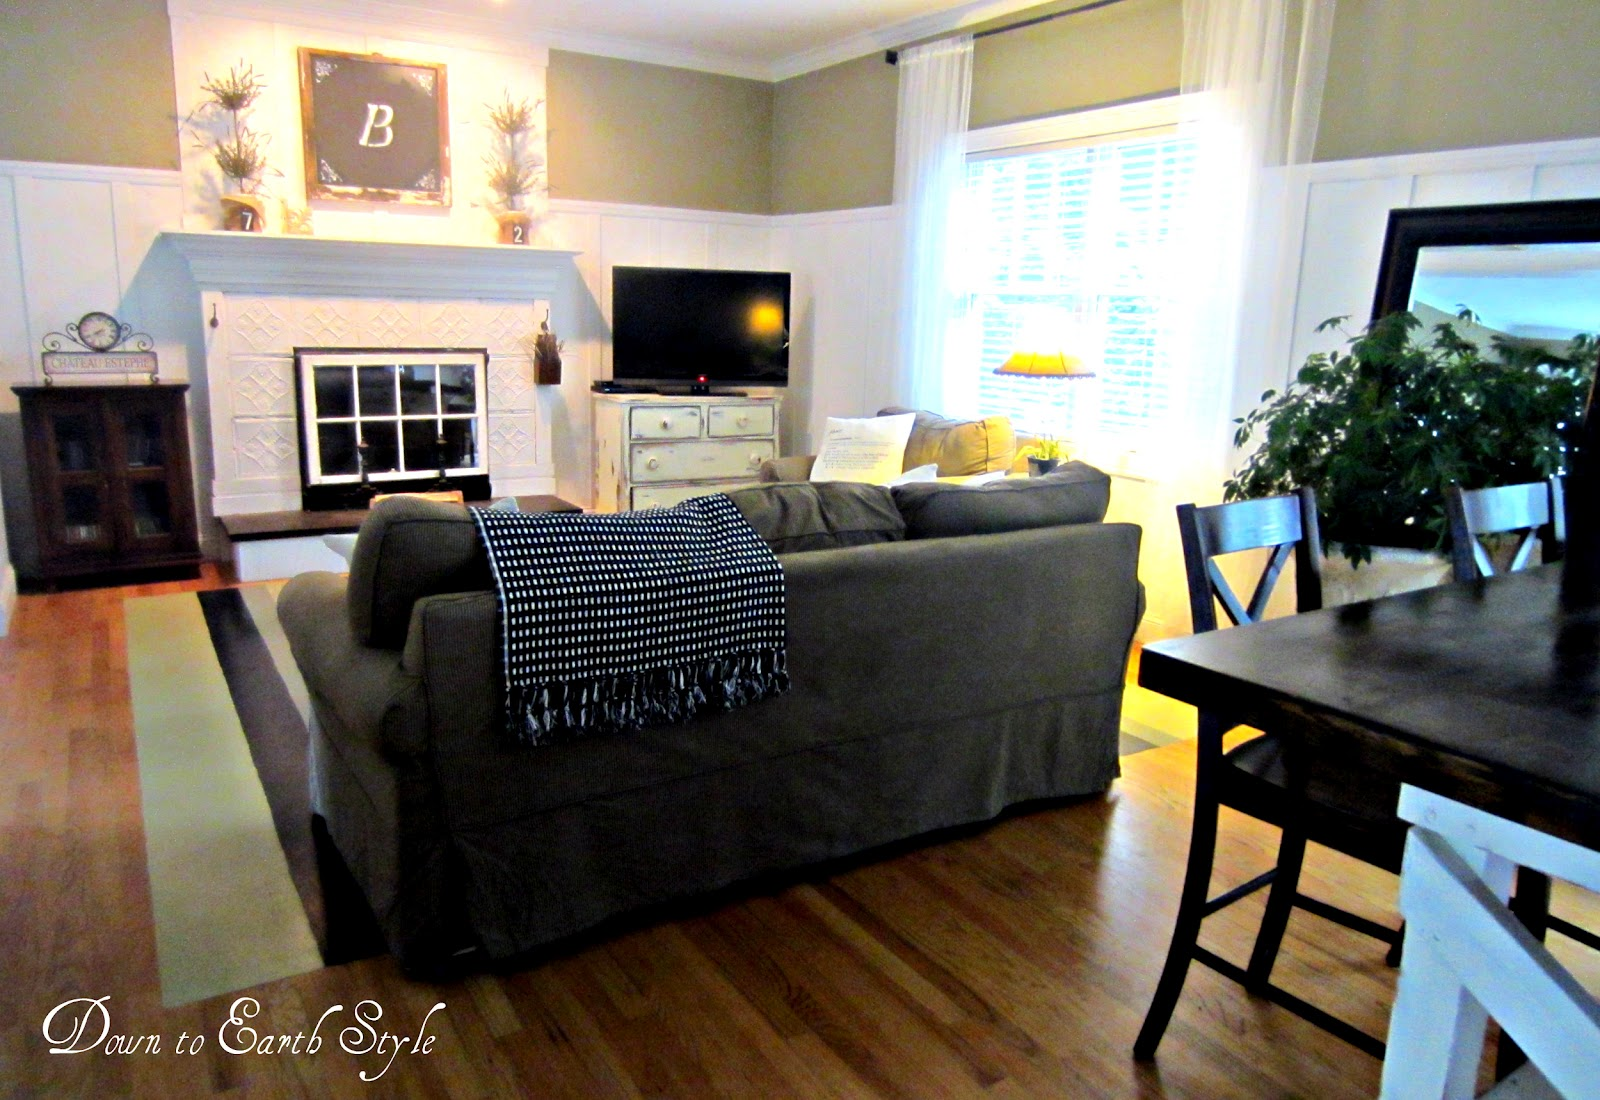 Down to earth style great room decorating Open floor plan living room furniture arrangement